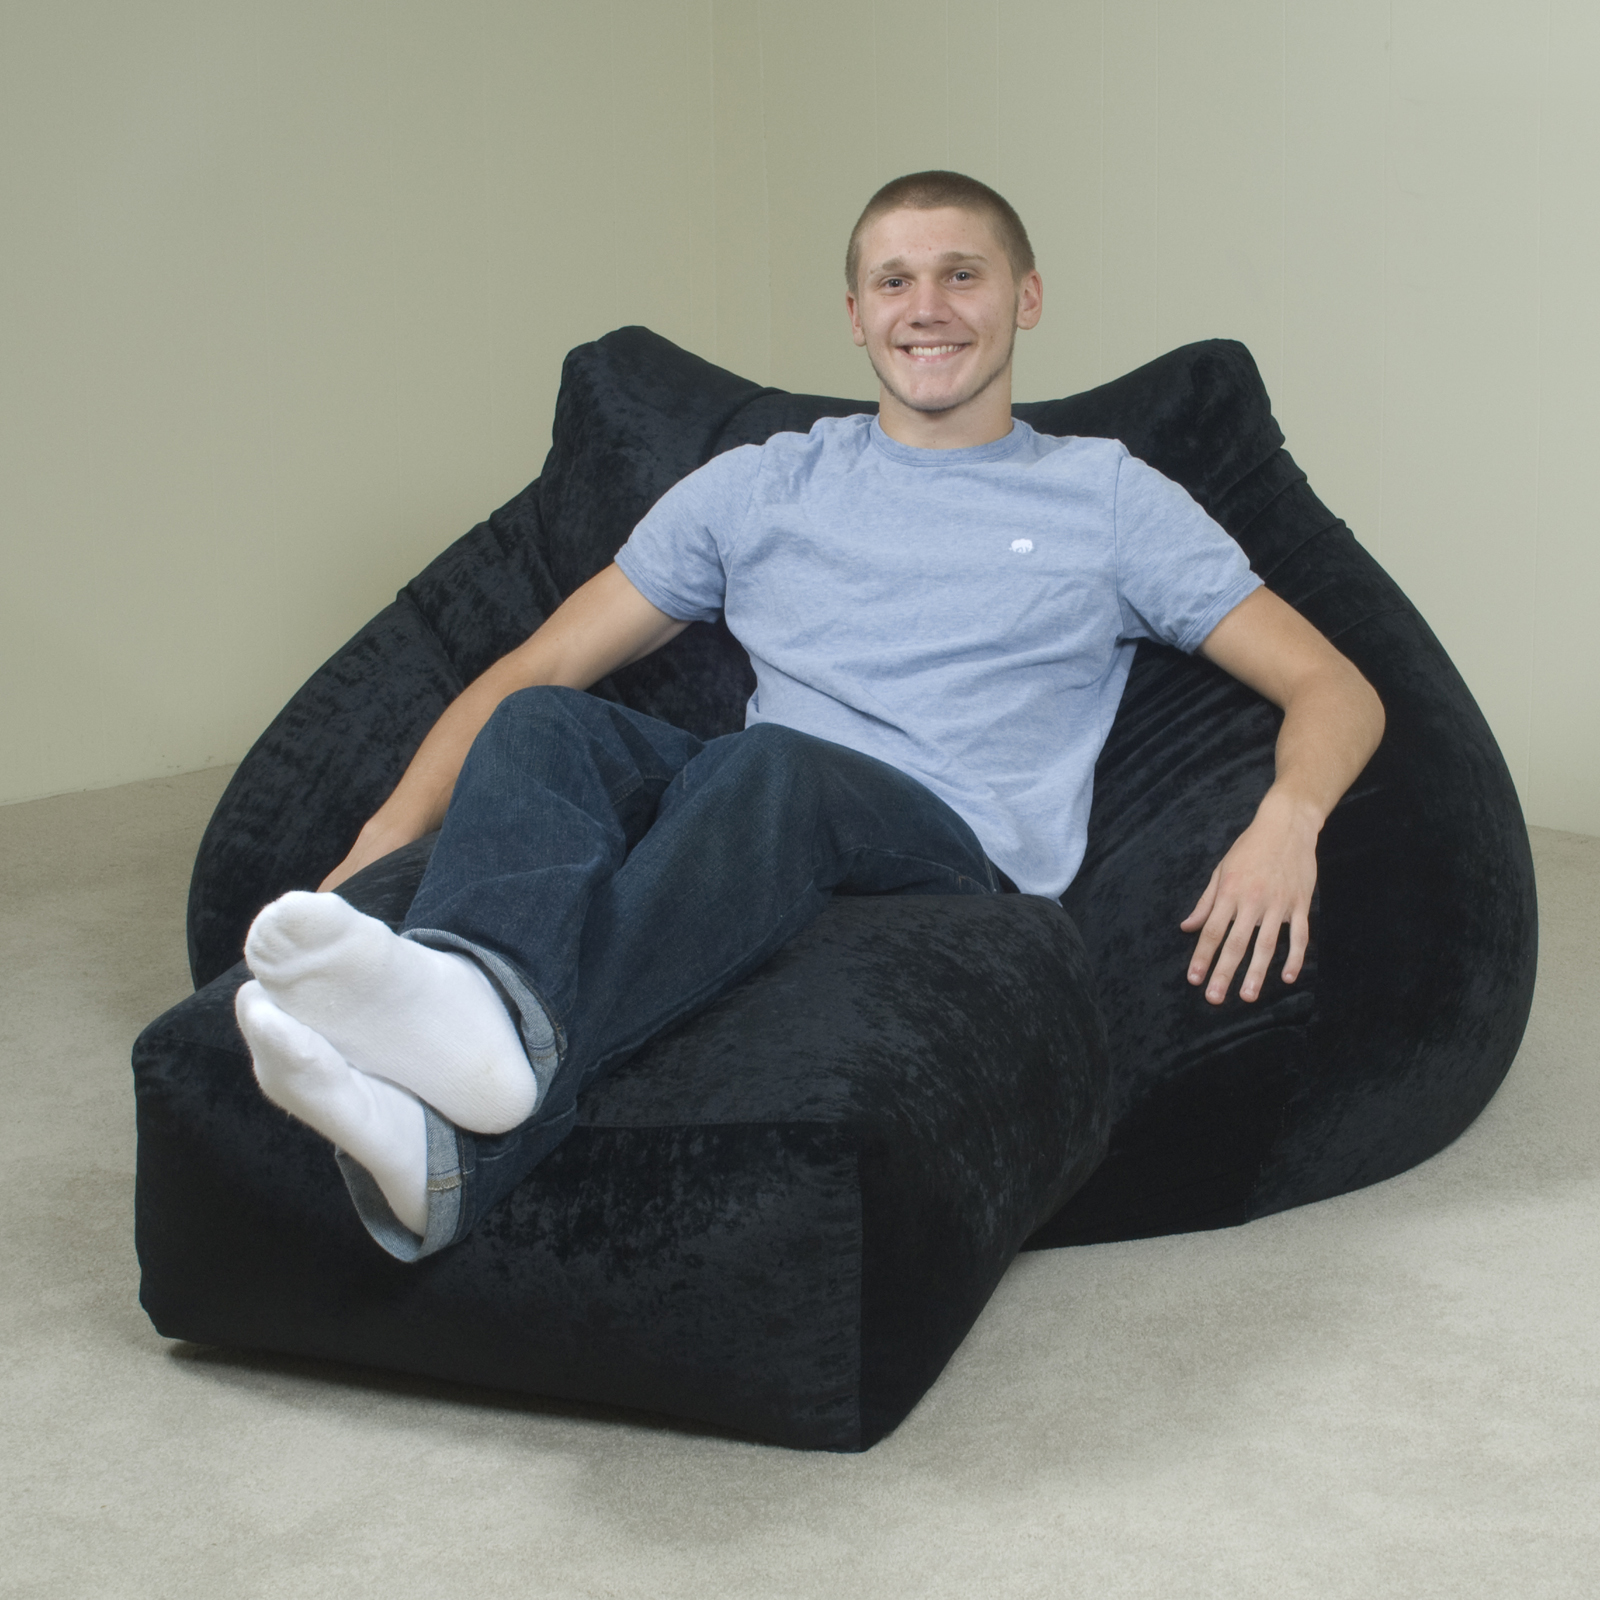 Cozy Bean Bag Chairs For Adults